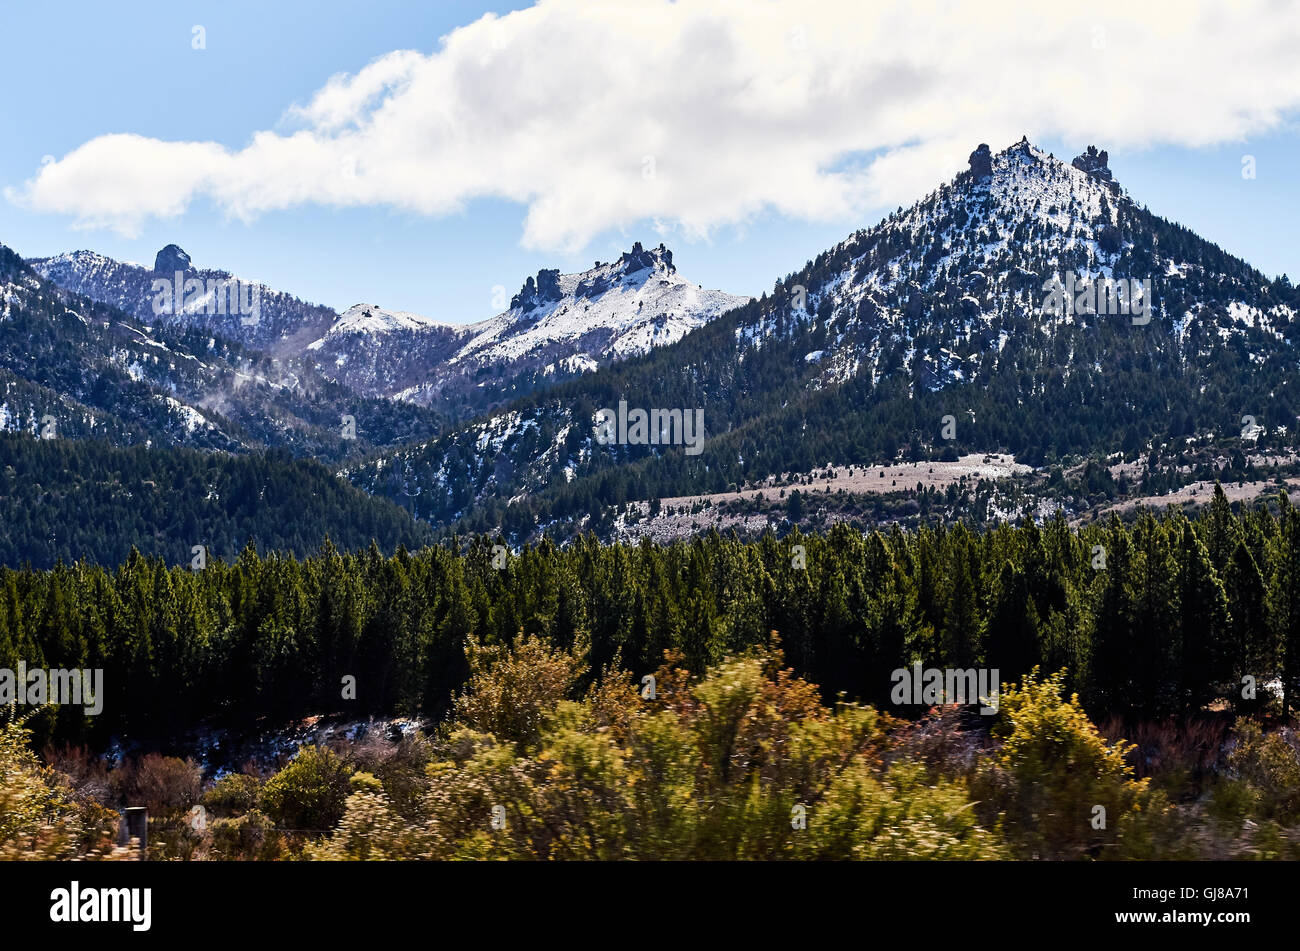 Some huge mountains in the distance in the Enchanted Valley in San Carlos de Bariloche, Argentina. - Stock Image